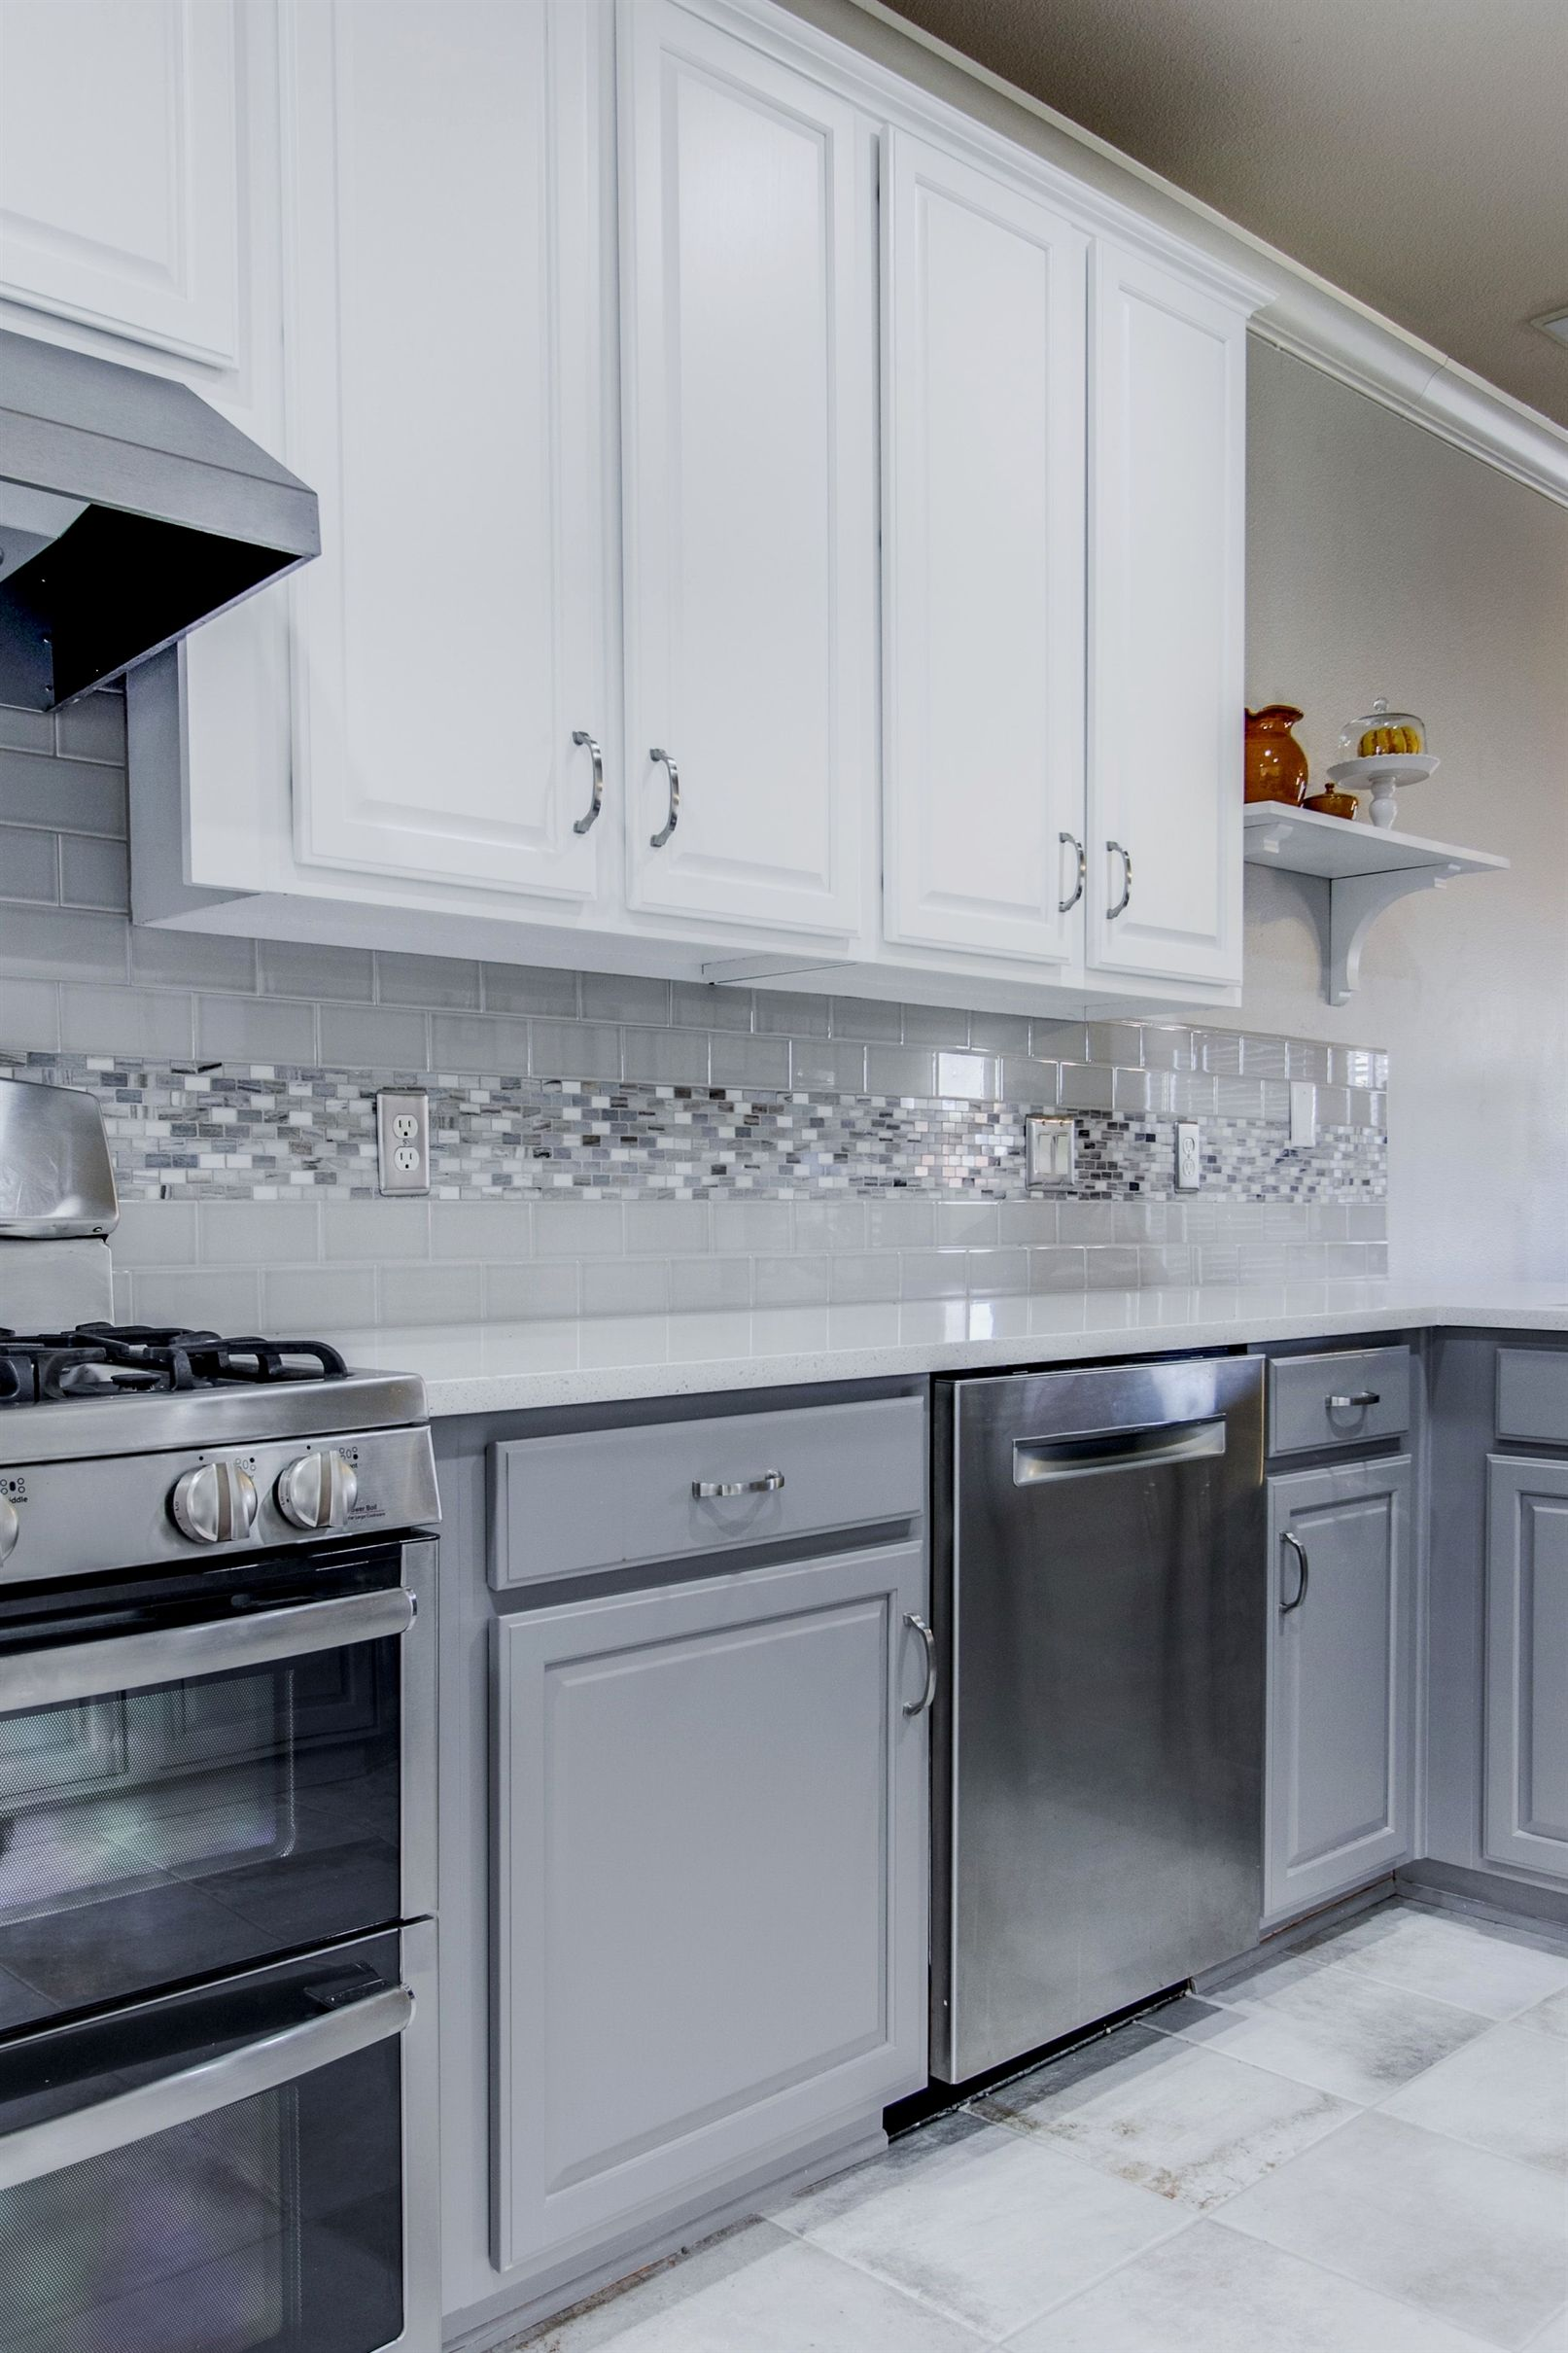 We Brought This Kitchen Up To Date By Painting The Existing Cabinets